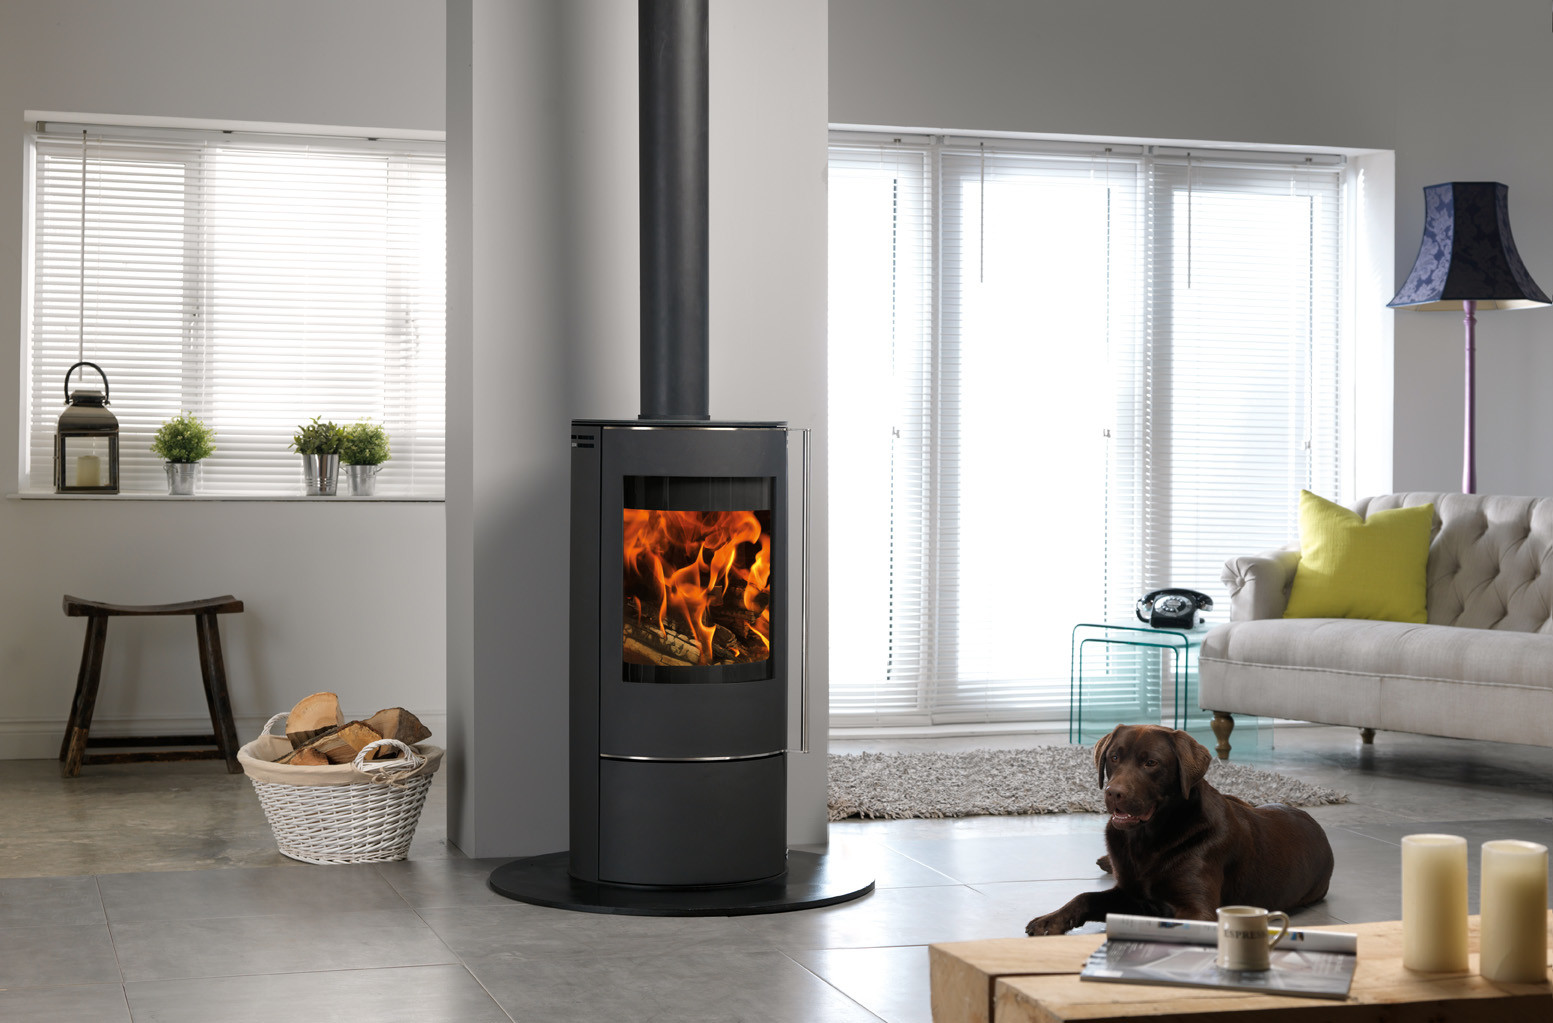 Solis wood burning stove